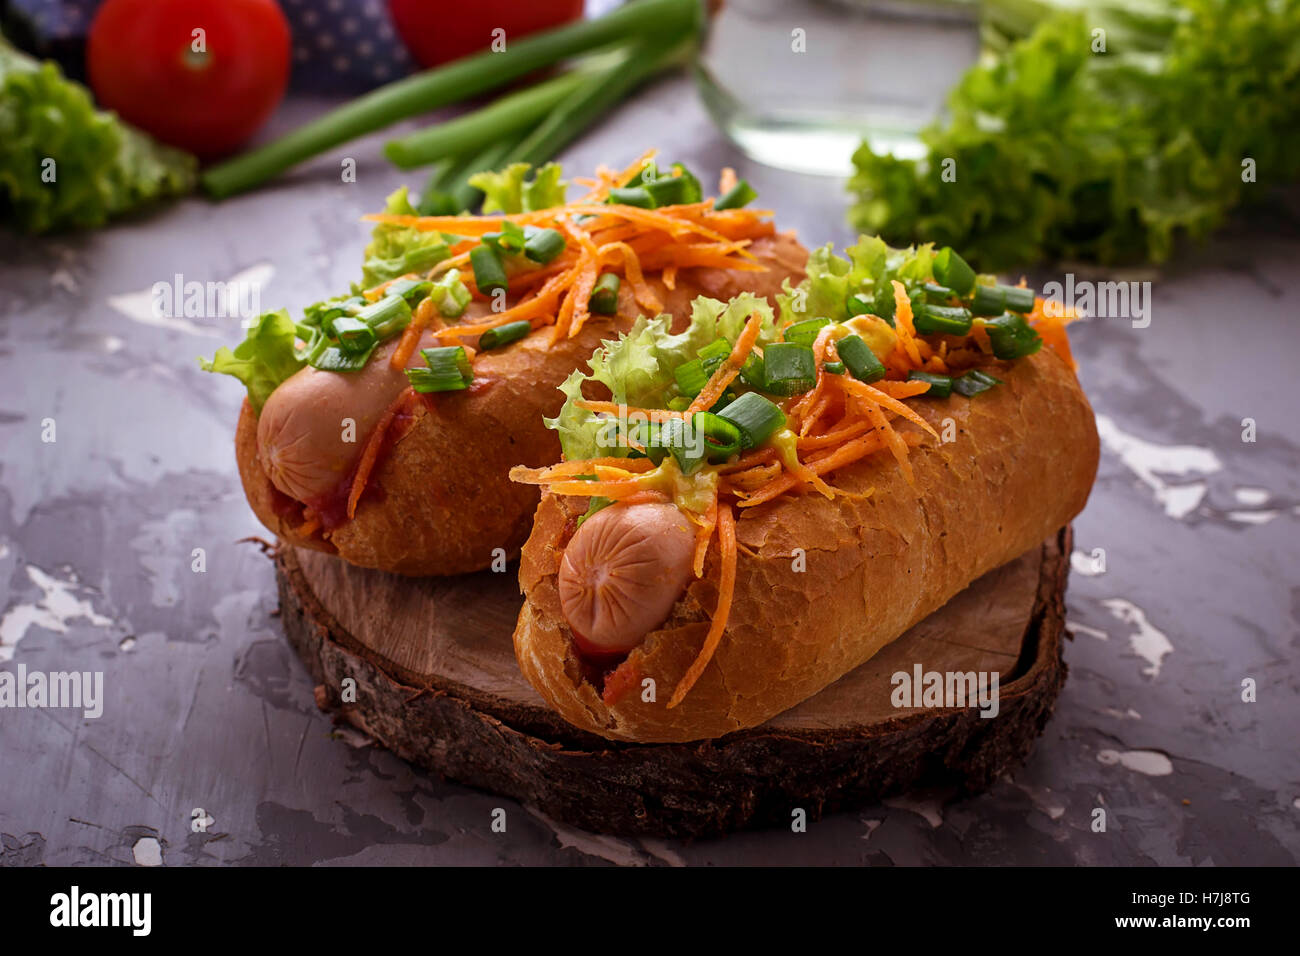 Hot dog with sausage, carrot, onion, lettuce. Selective focus - Stock Image